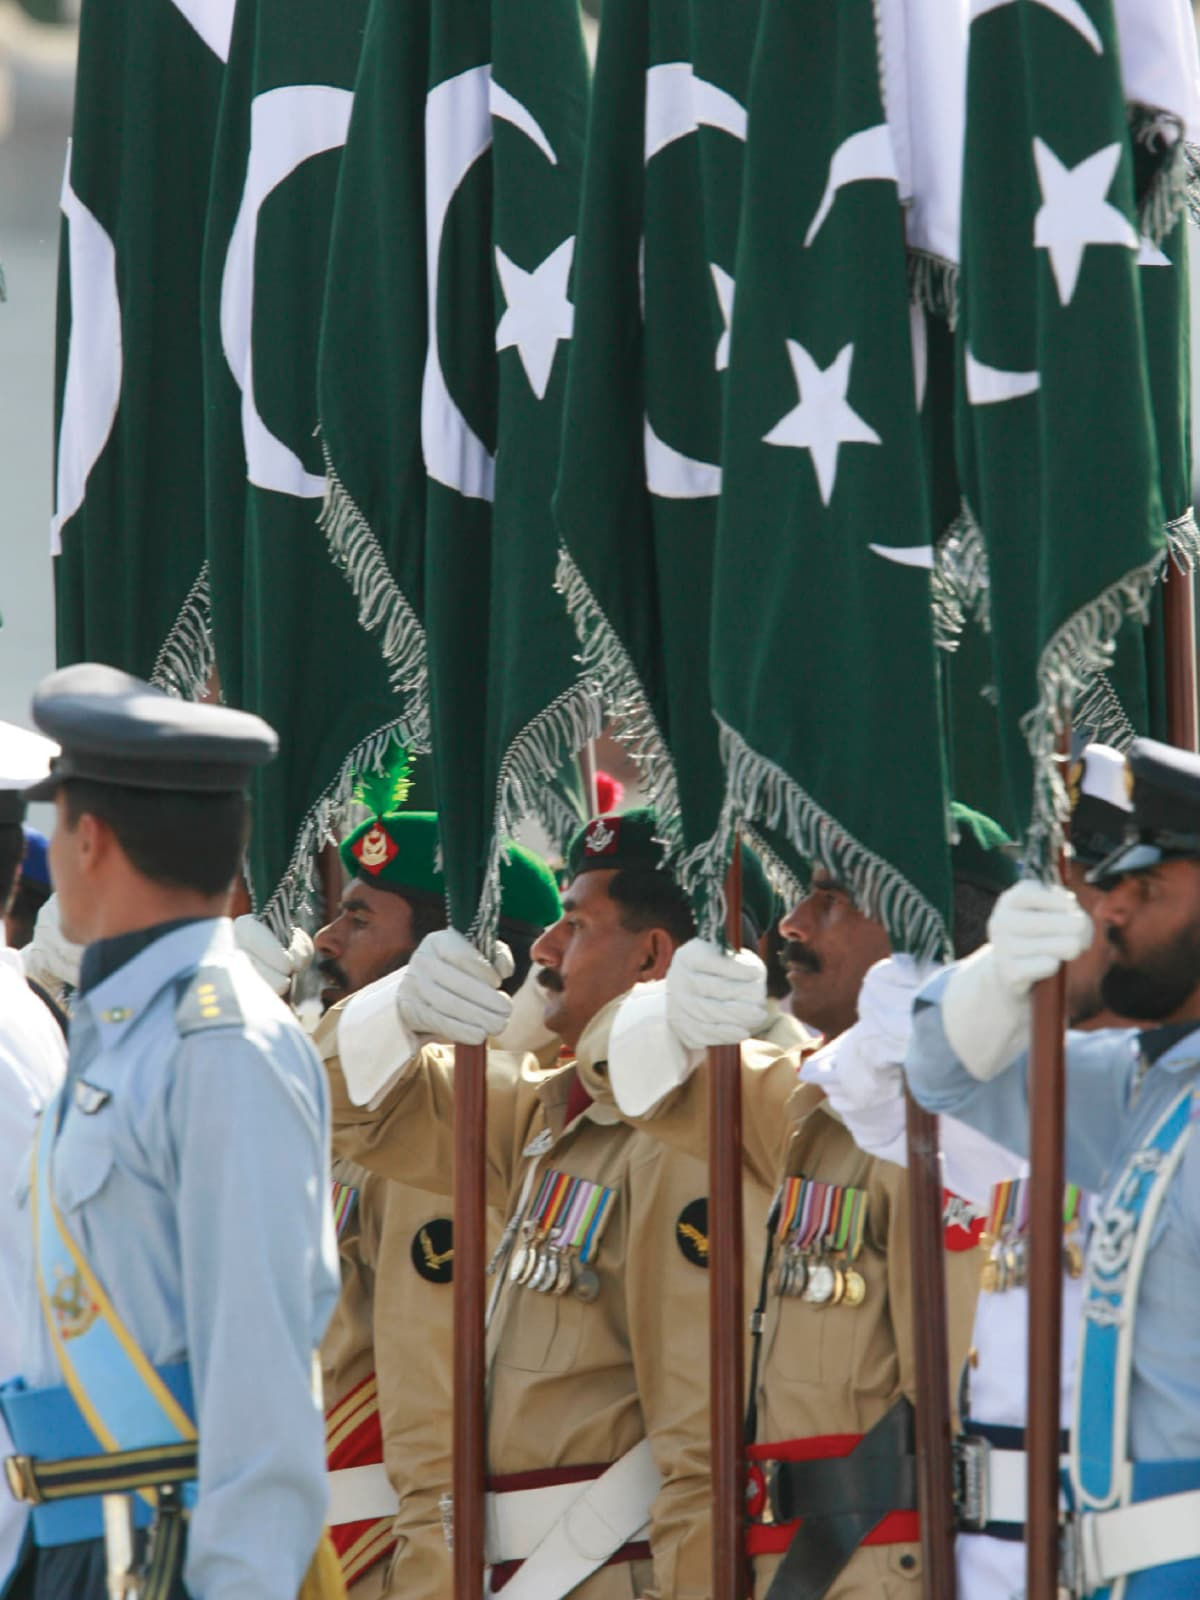 Pakistani soldiers at a military parade | Tanveer Shahzad, White Star